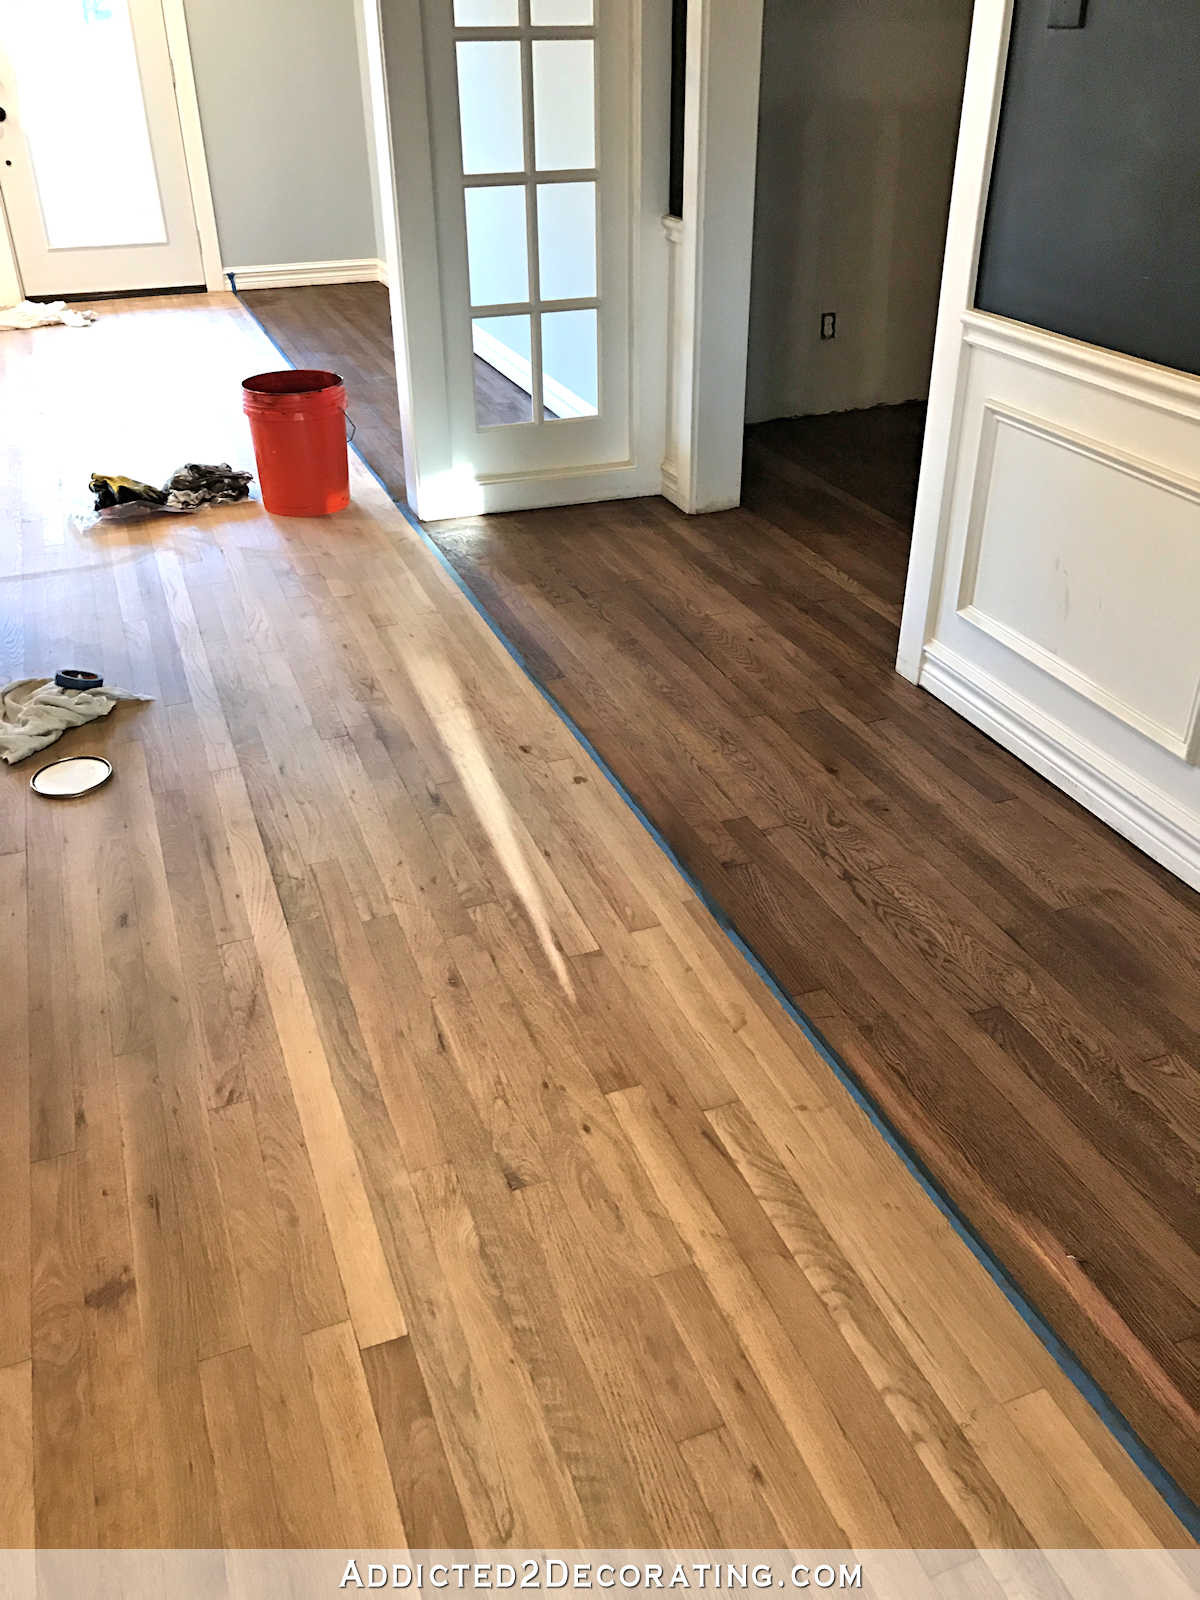 staining hardwood floors lighter of adventures in staining my red oak hardwood floors products process regarding staining red oak hardwood floors 6 stain on partial floor in entryway and music